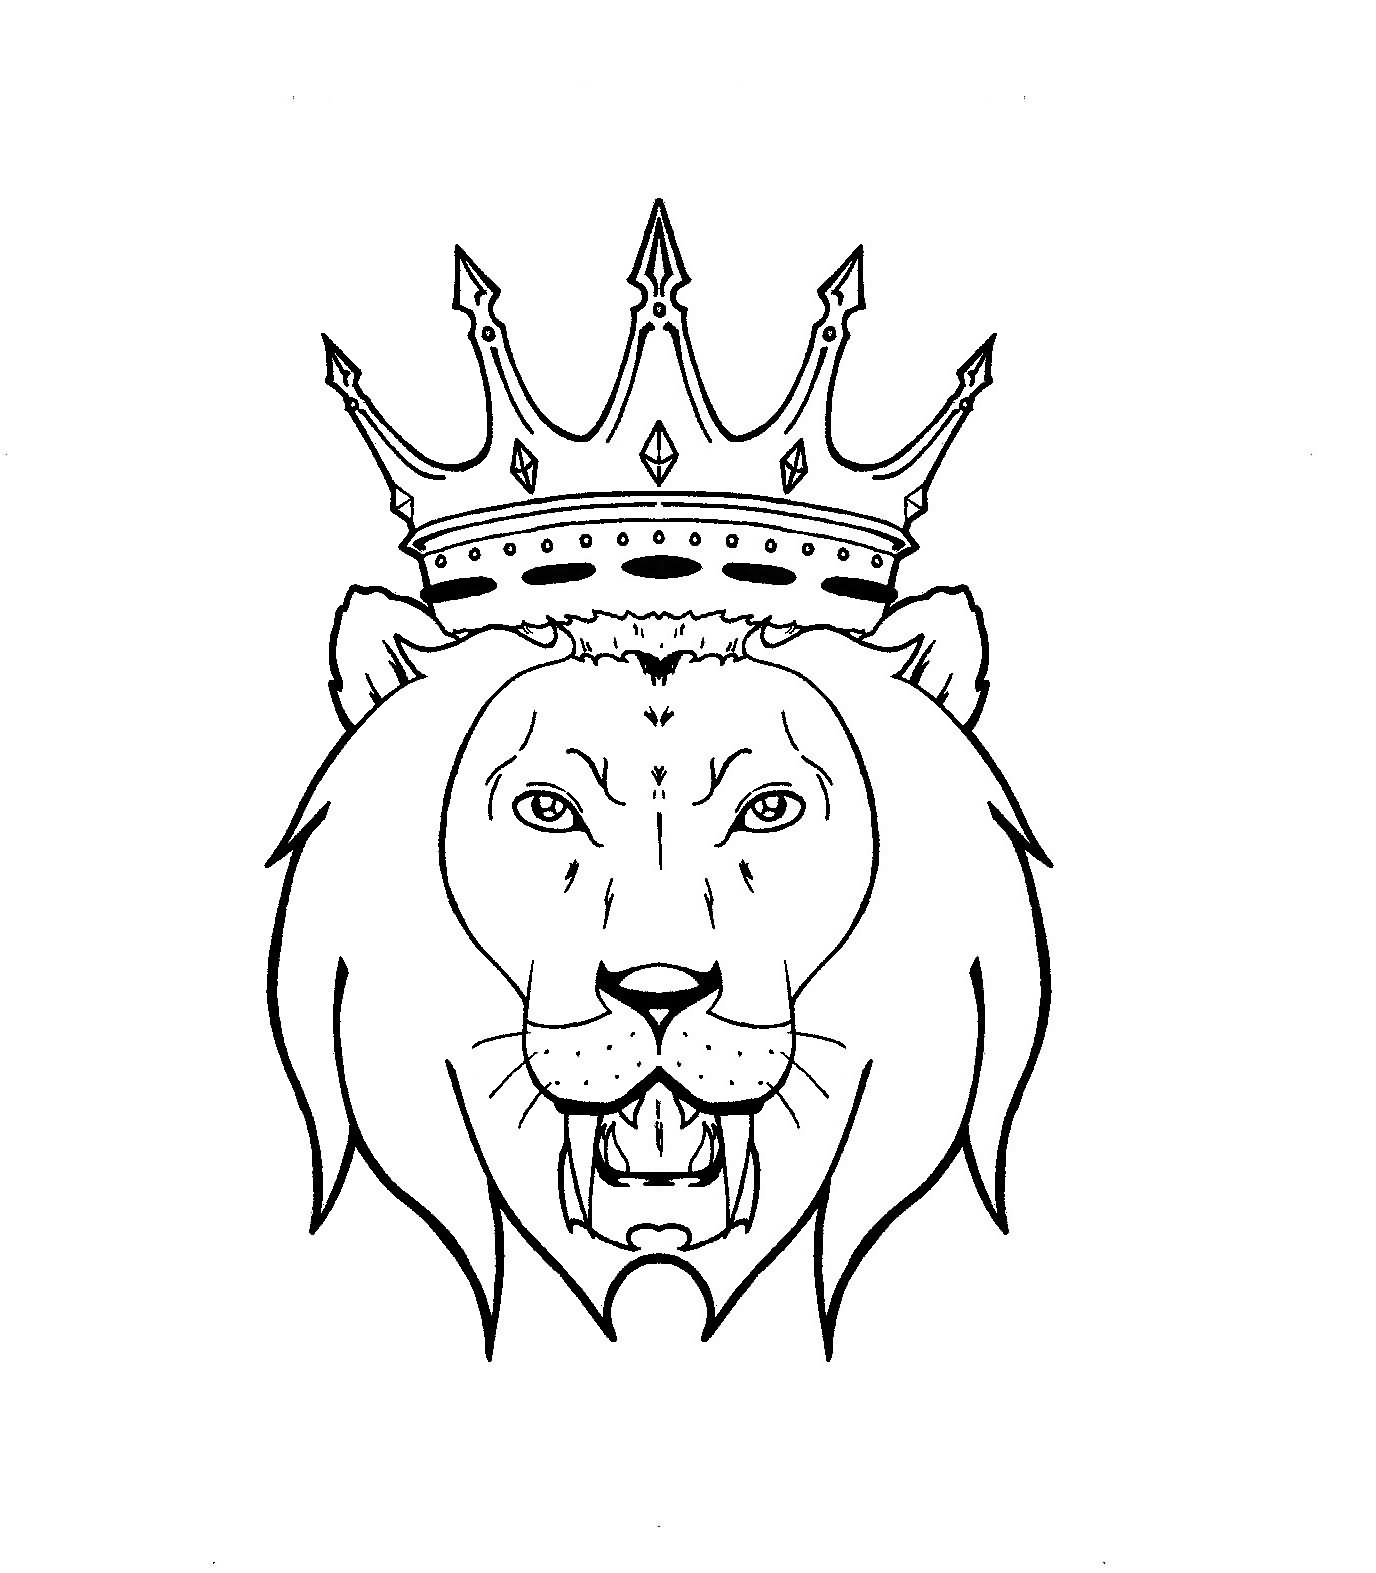 Line Drawing Of A Crown